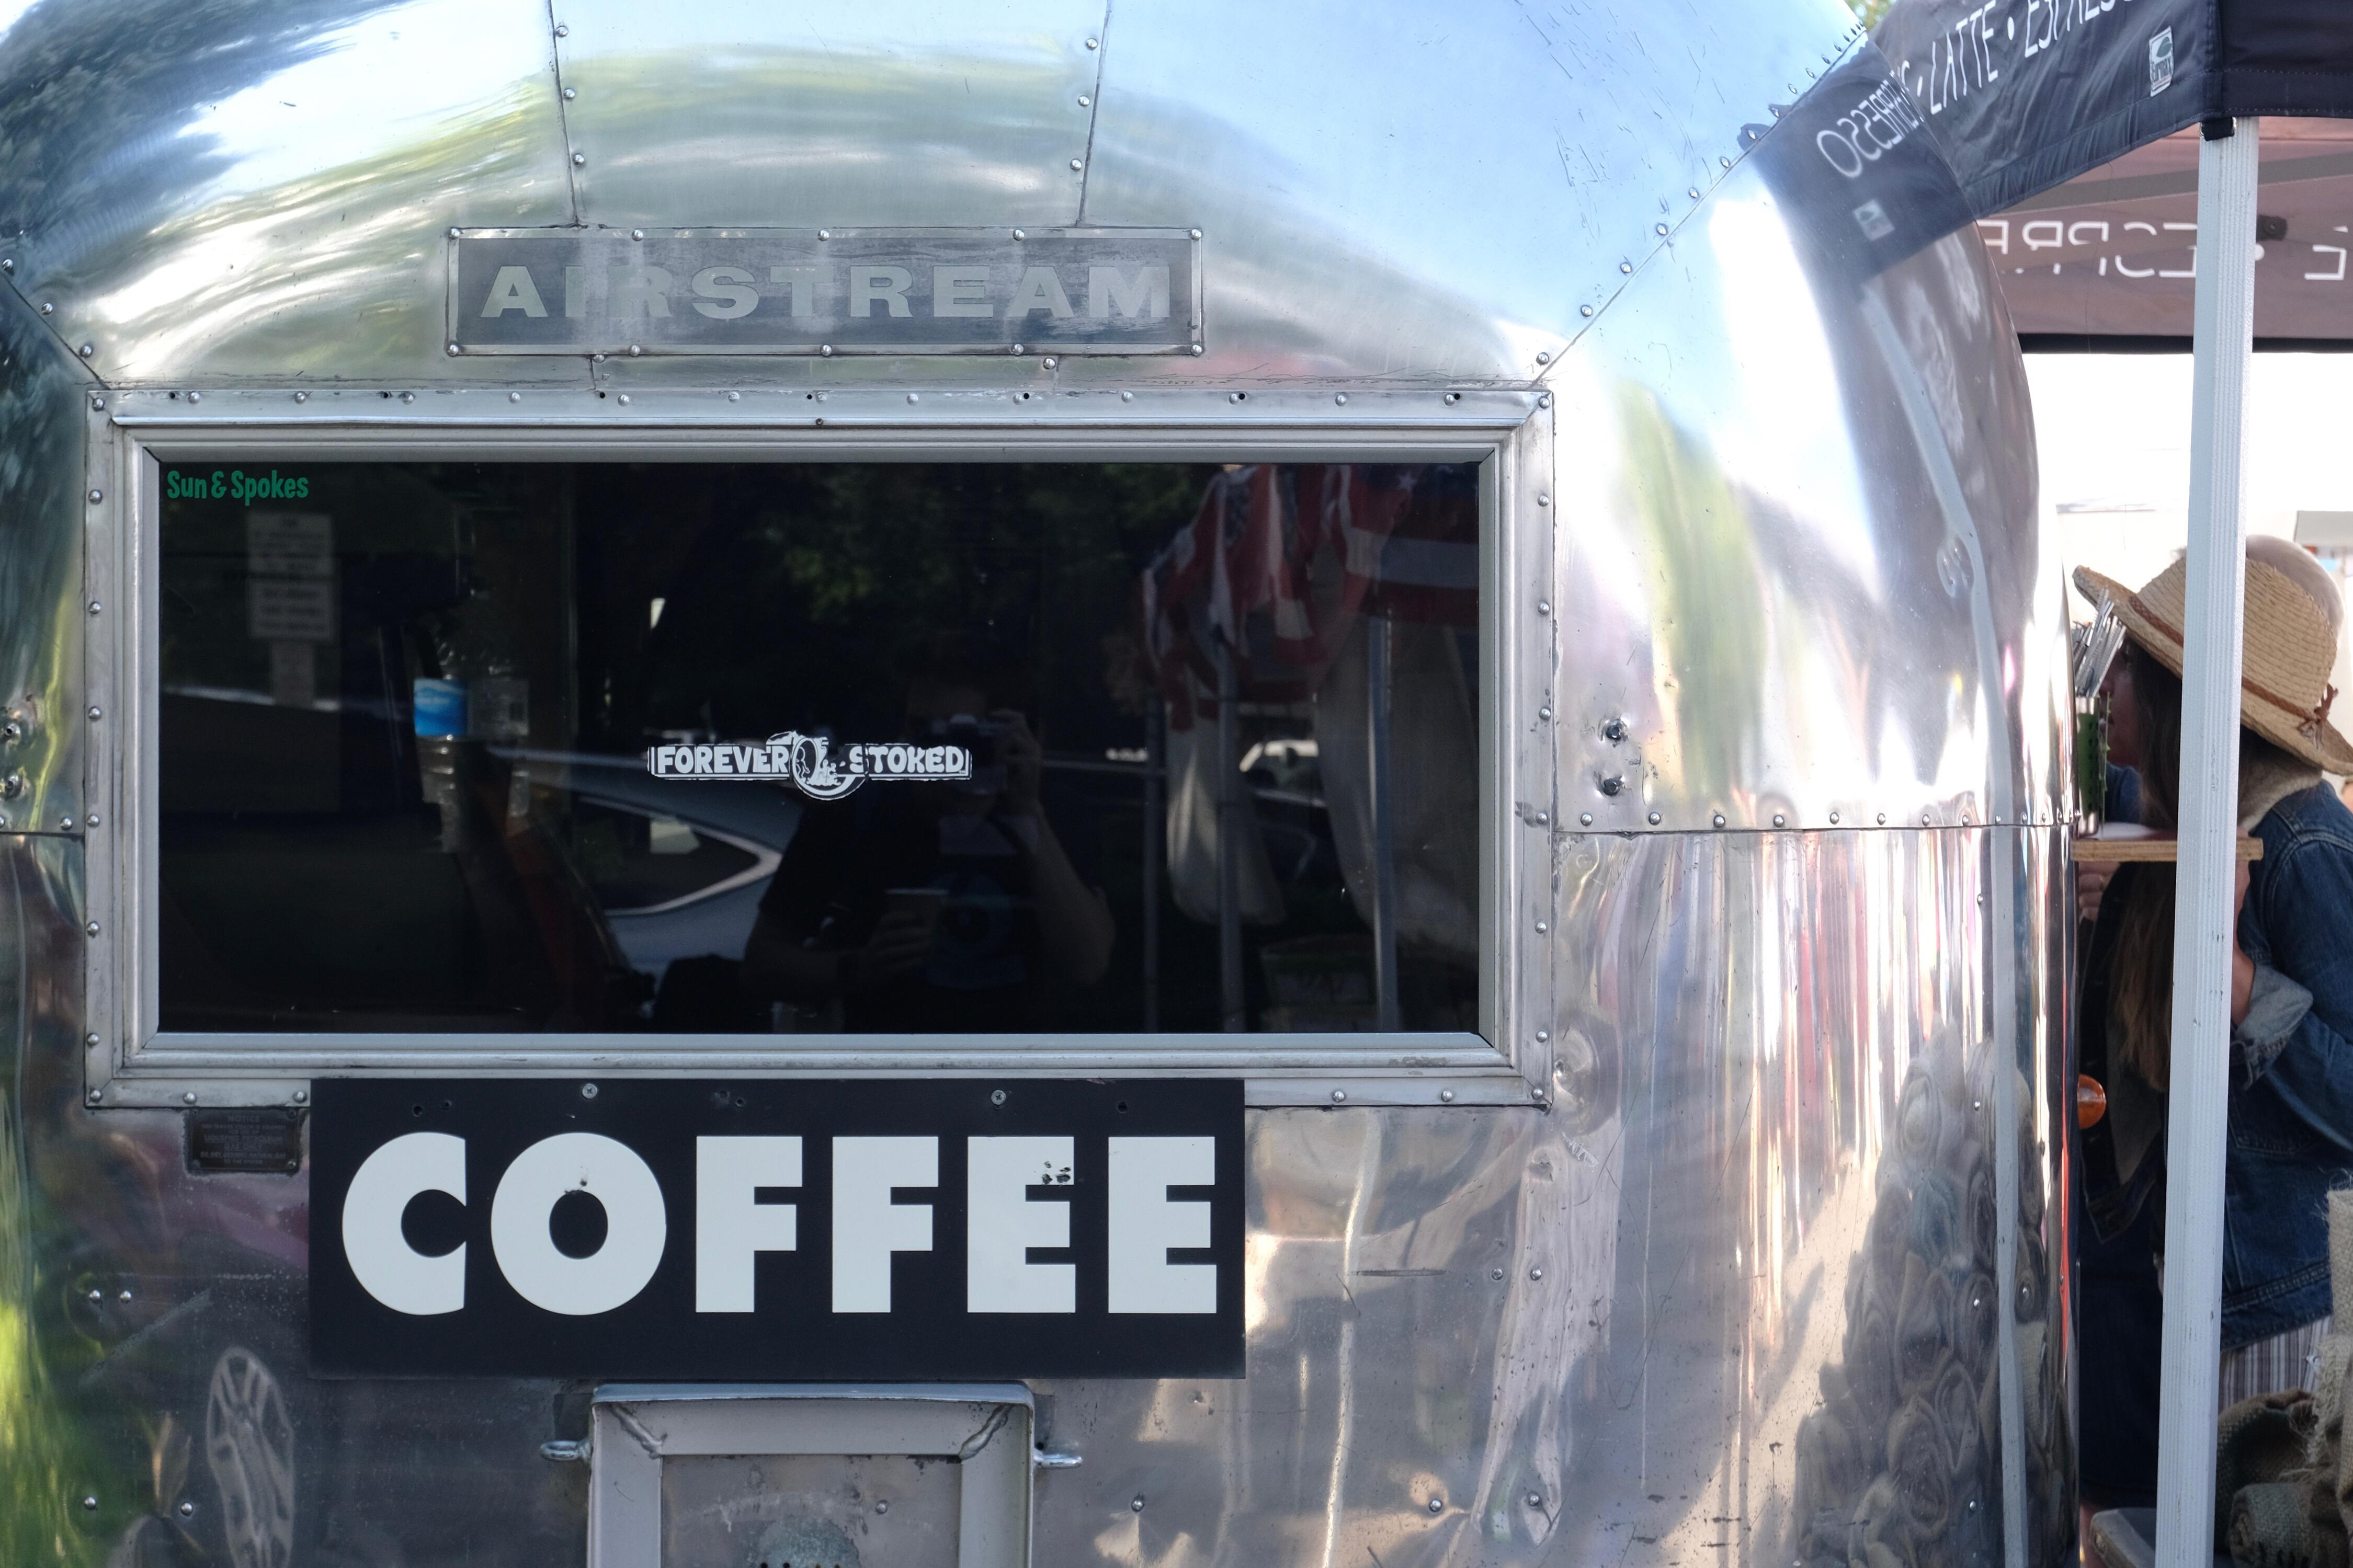 Shiny Airstream trailer with a COFFEE sign and reflective window